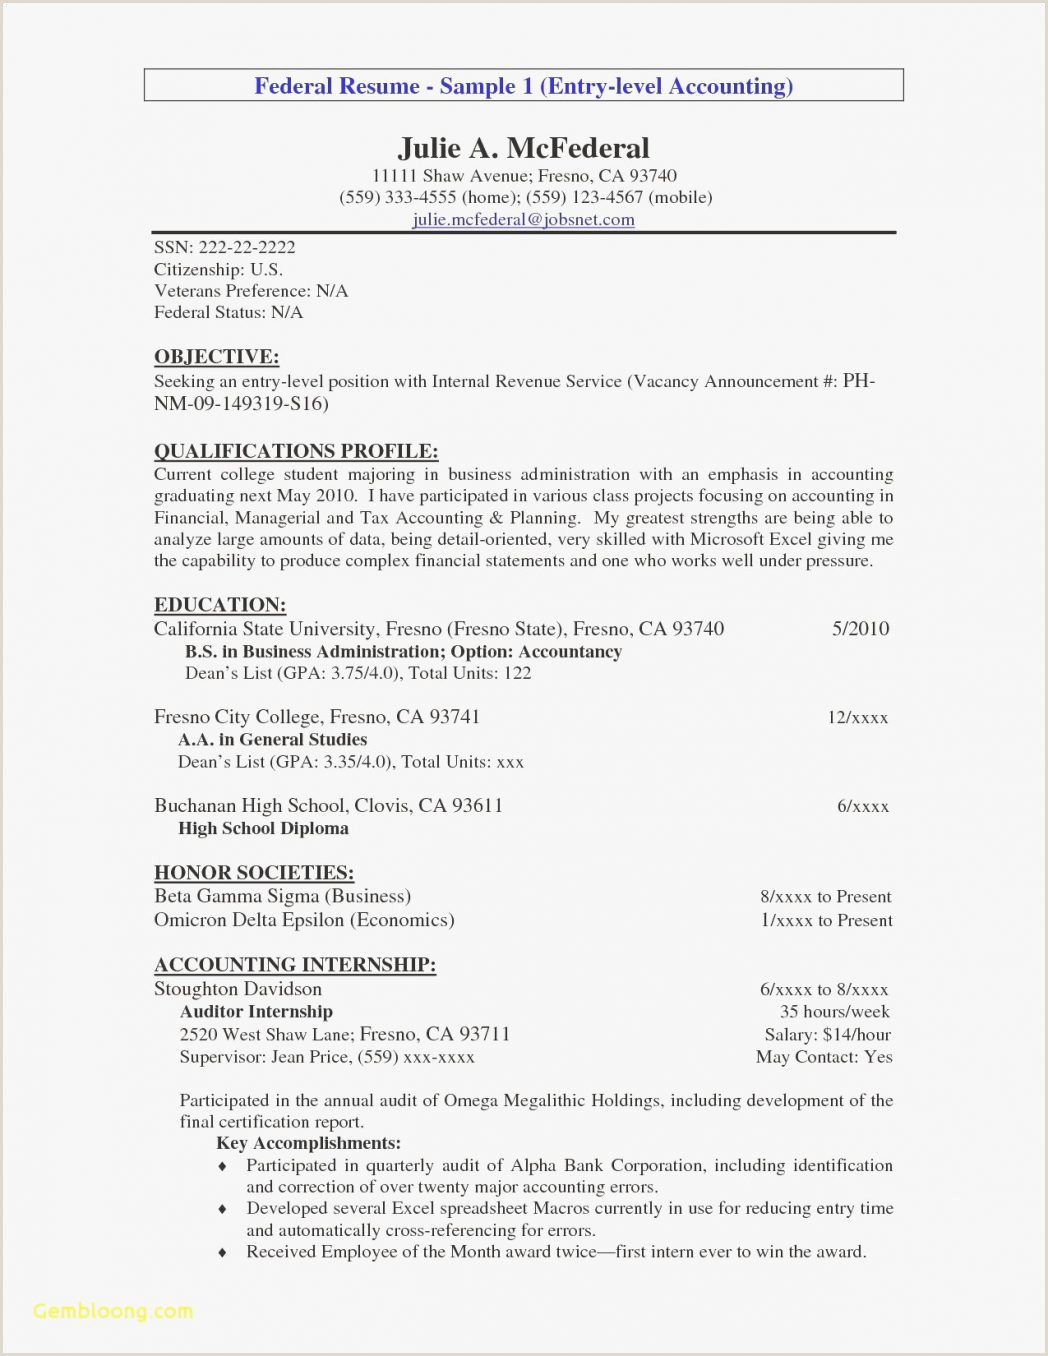 Fresher Resume Format Electrical Engineer Cover Letter De Shaw Exclusive Entry Level Examples Elegant